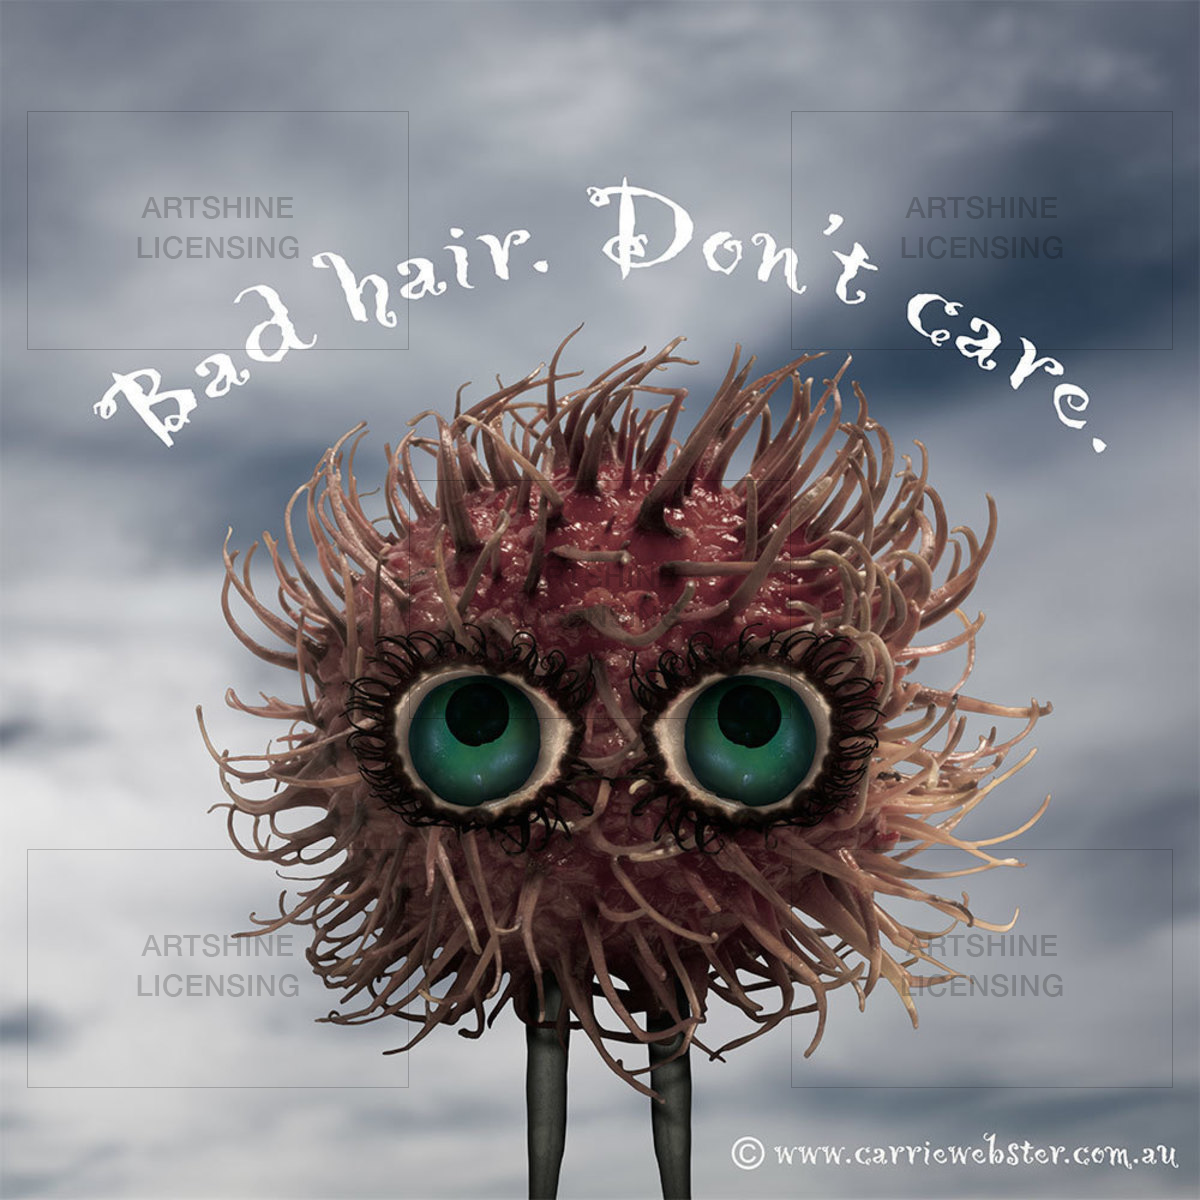 Bad Hair Don't Care